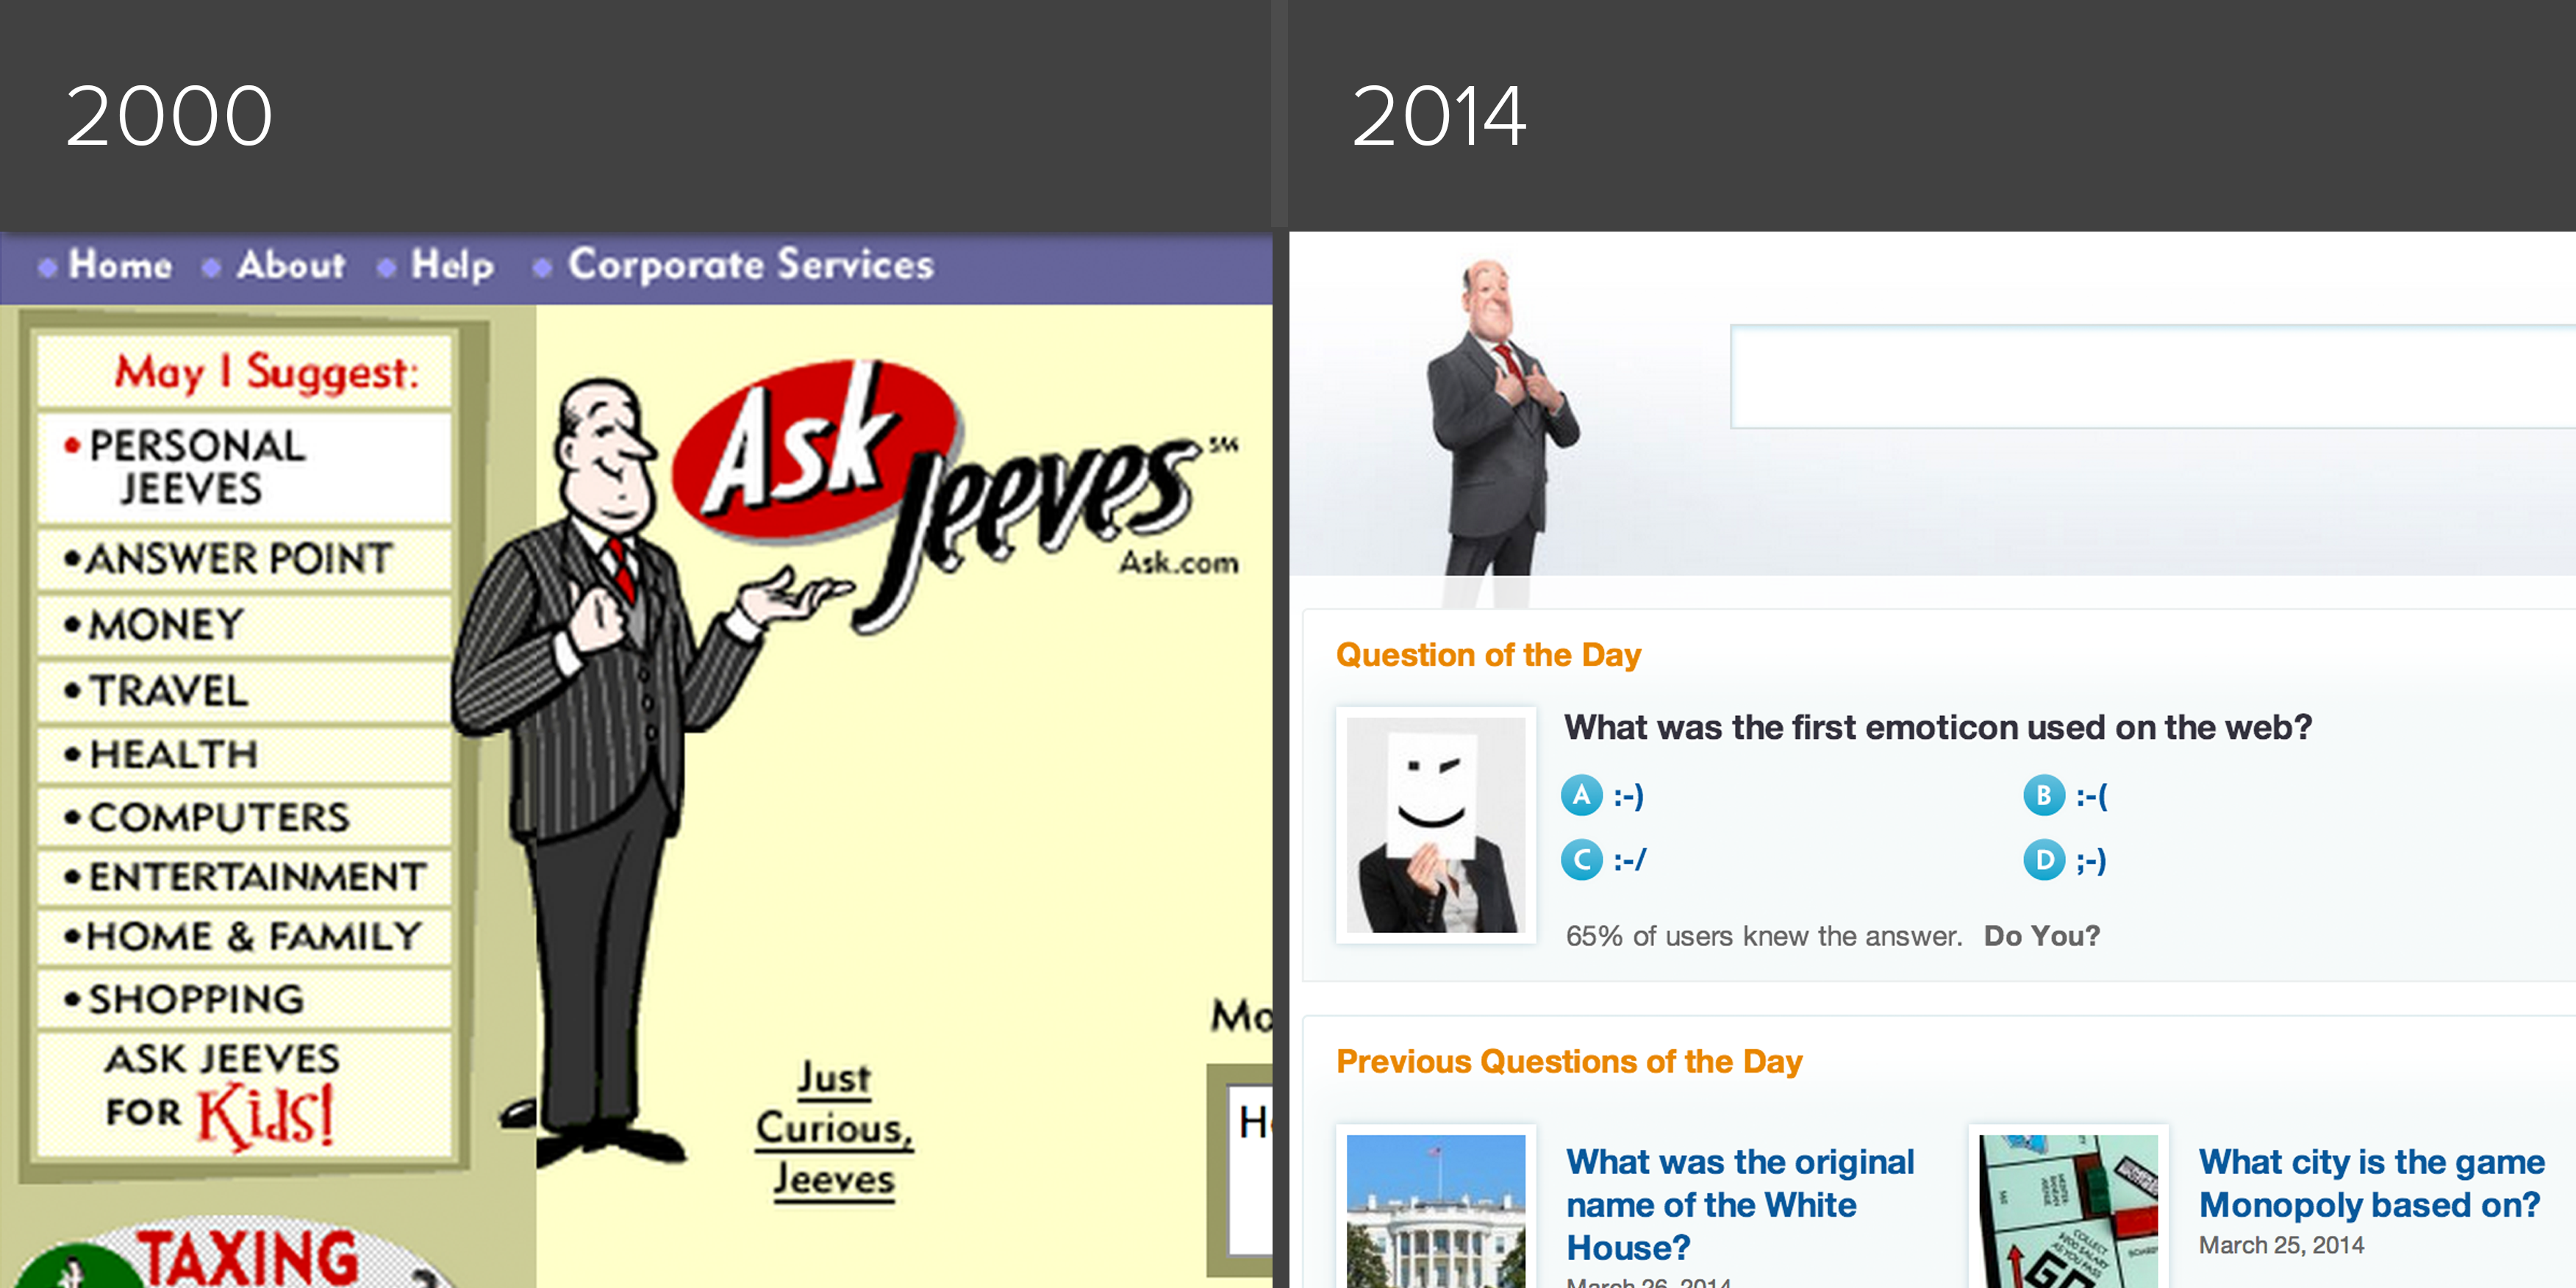 AskJeeves_Then_and_Now-2